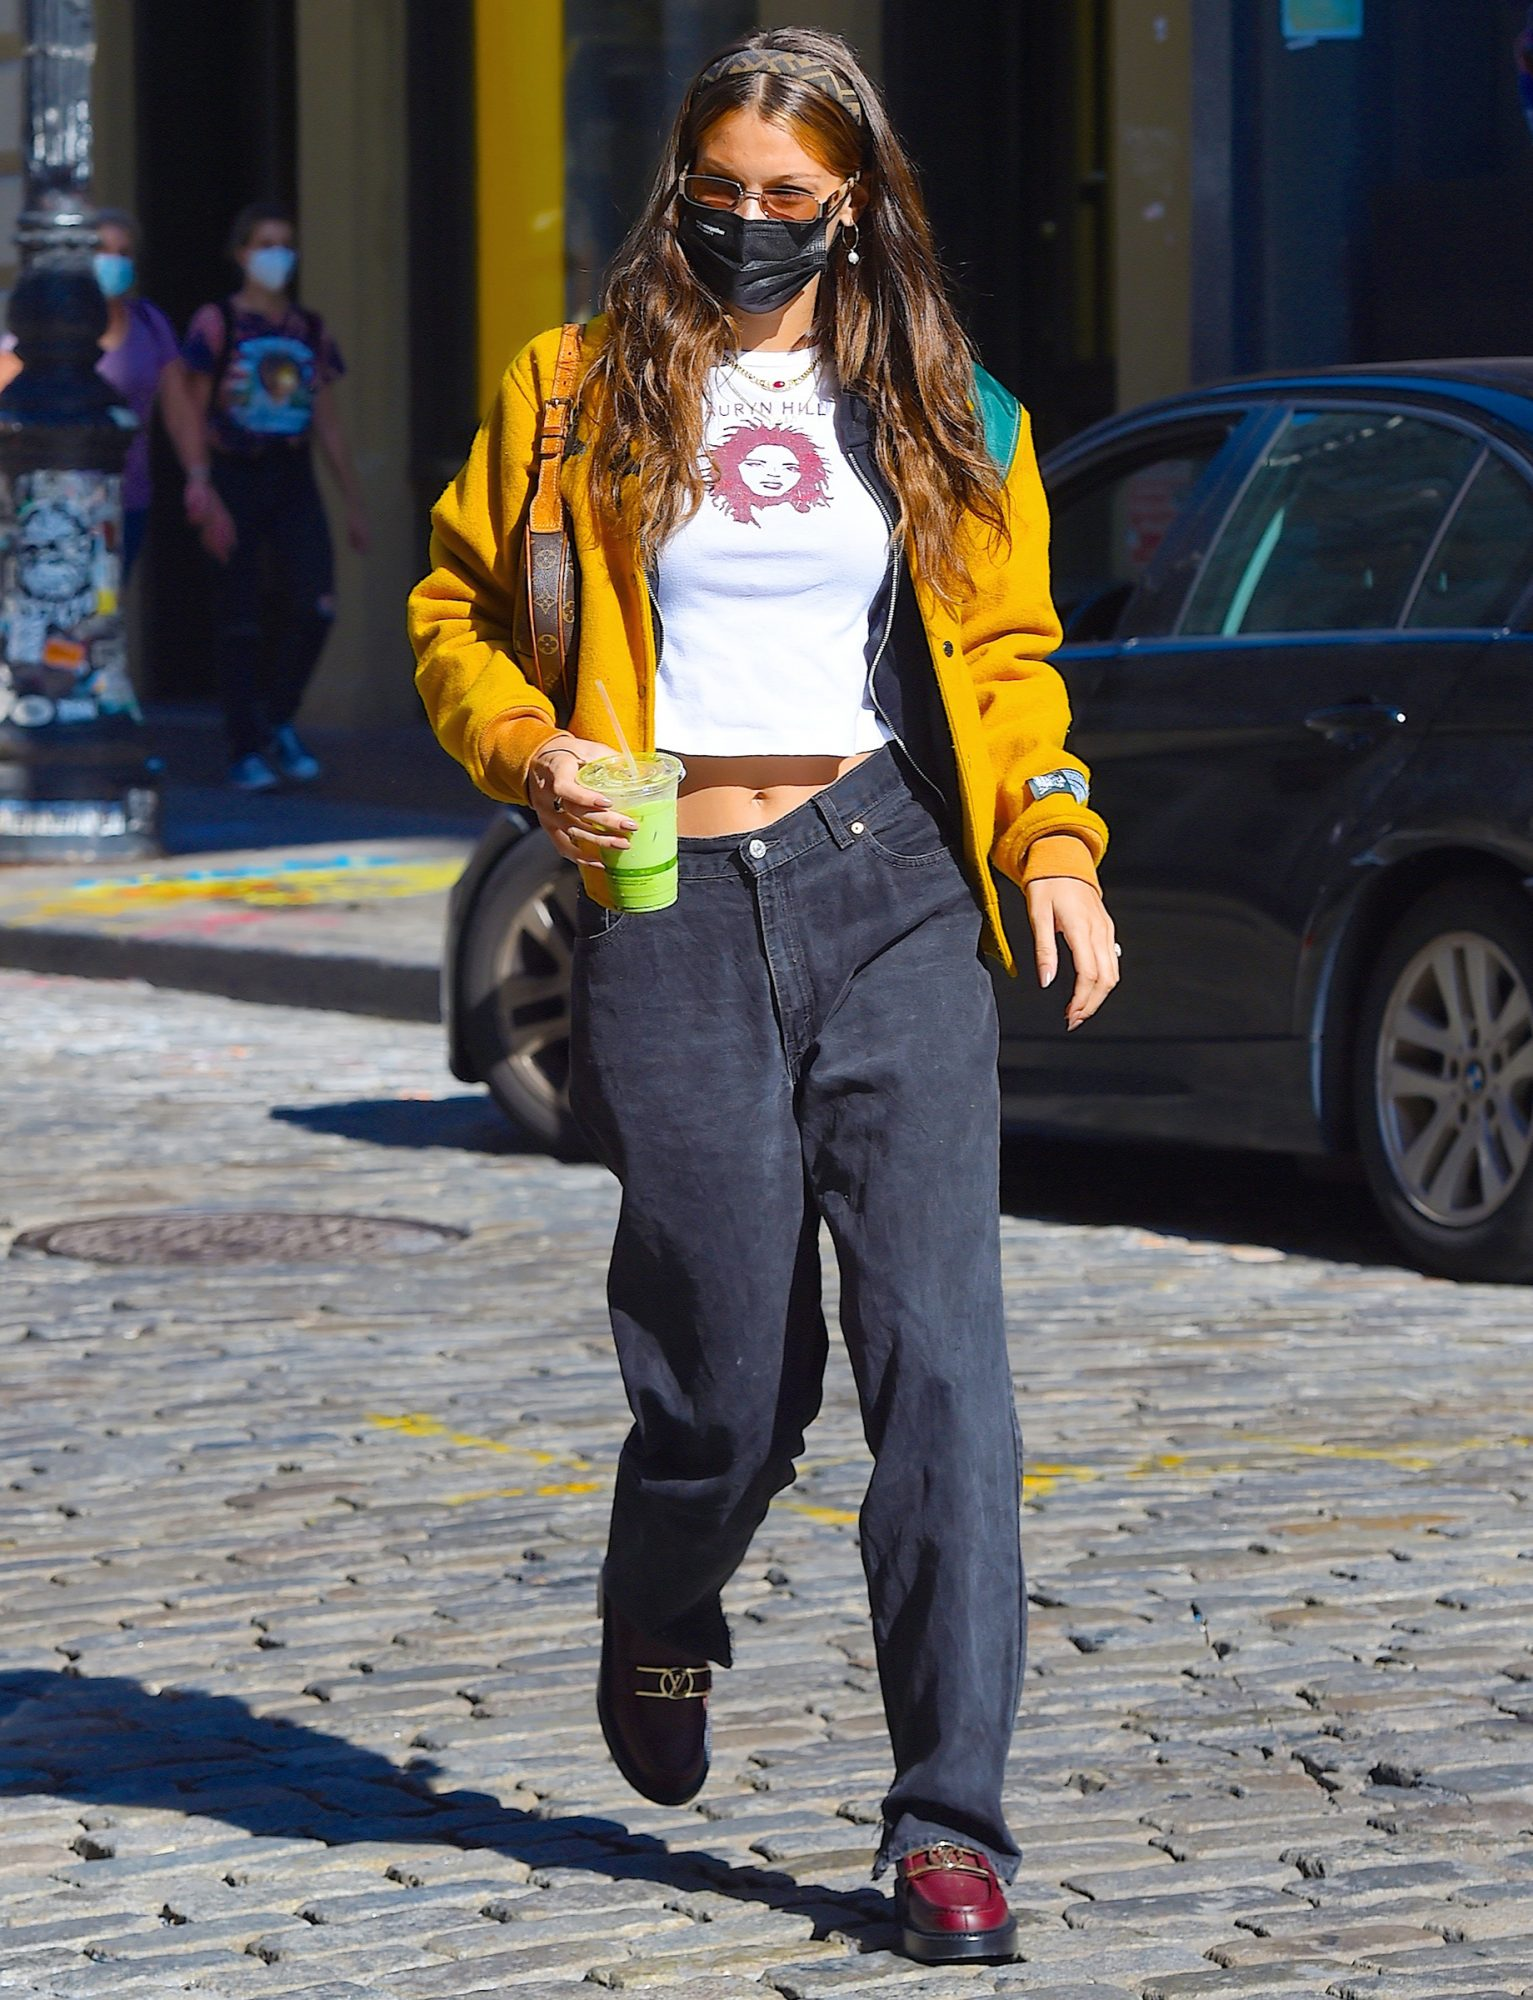 Bella Hadid seen out and about in Manhattan on October 20, 2020 in New York City